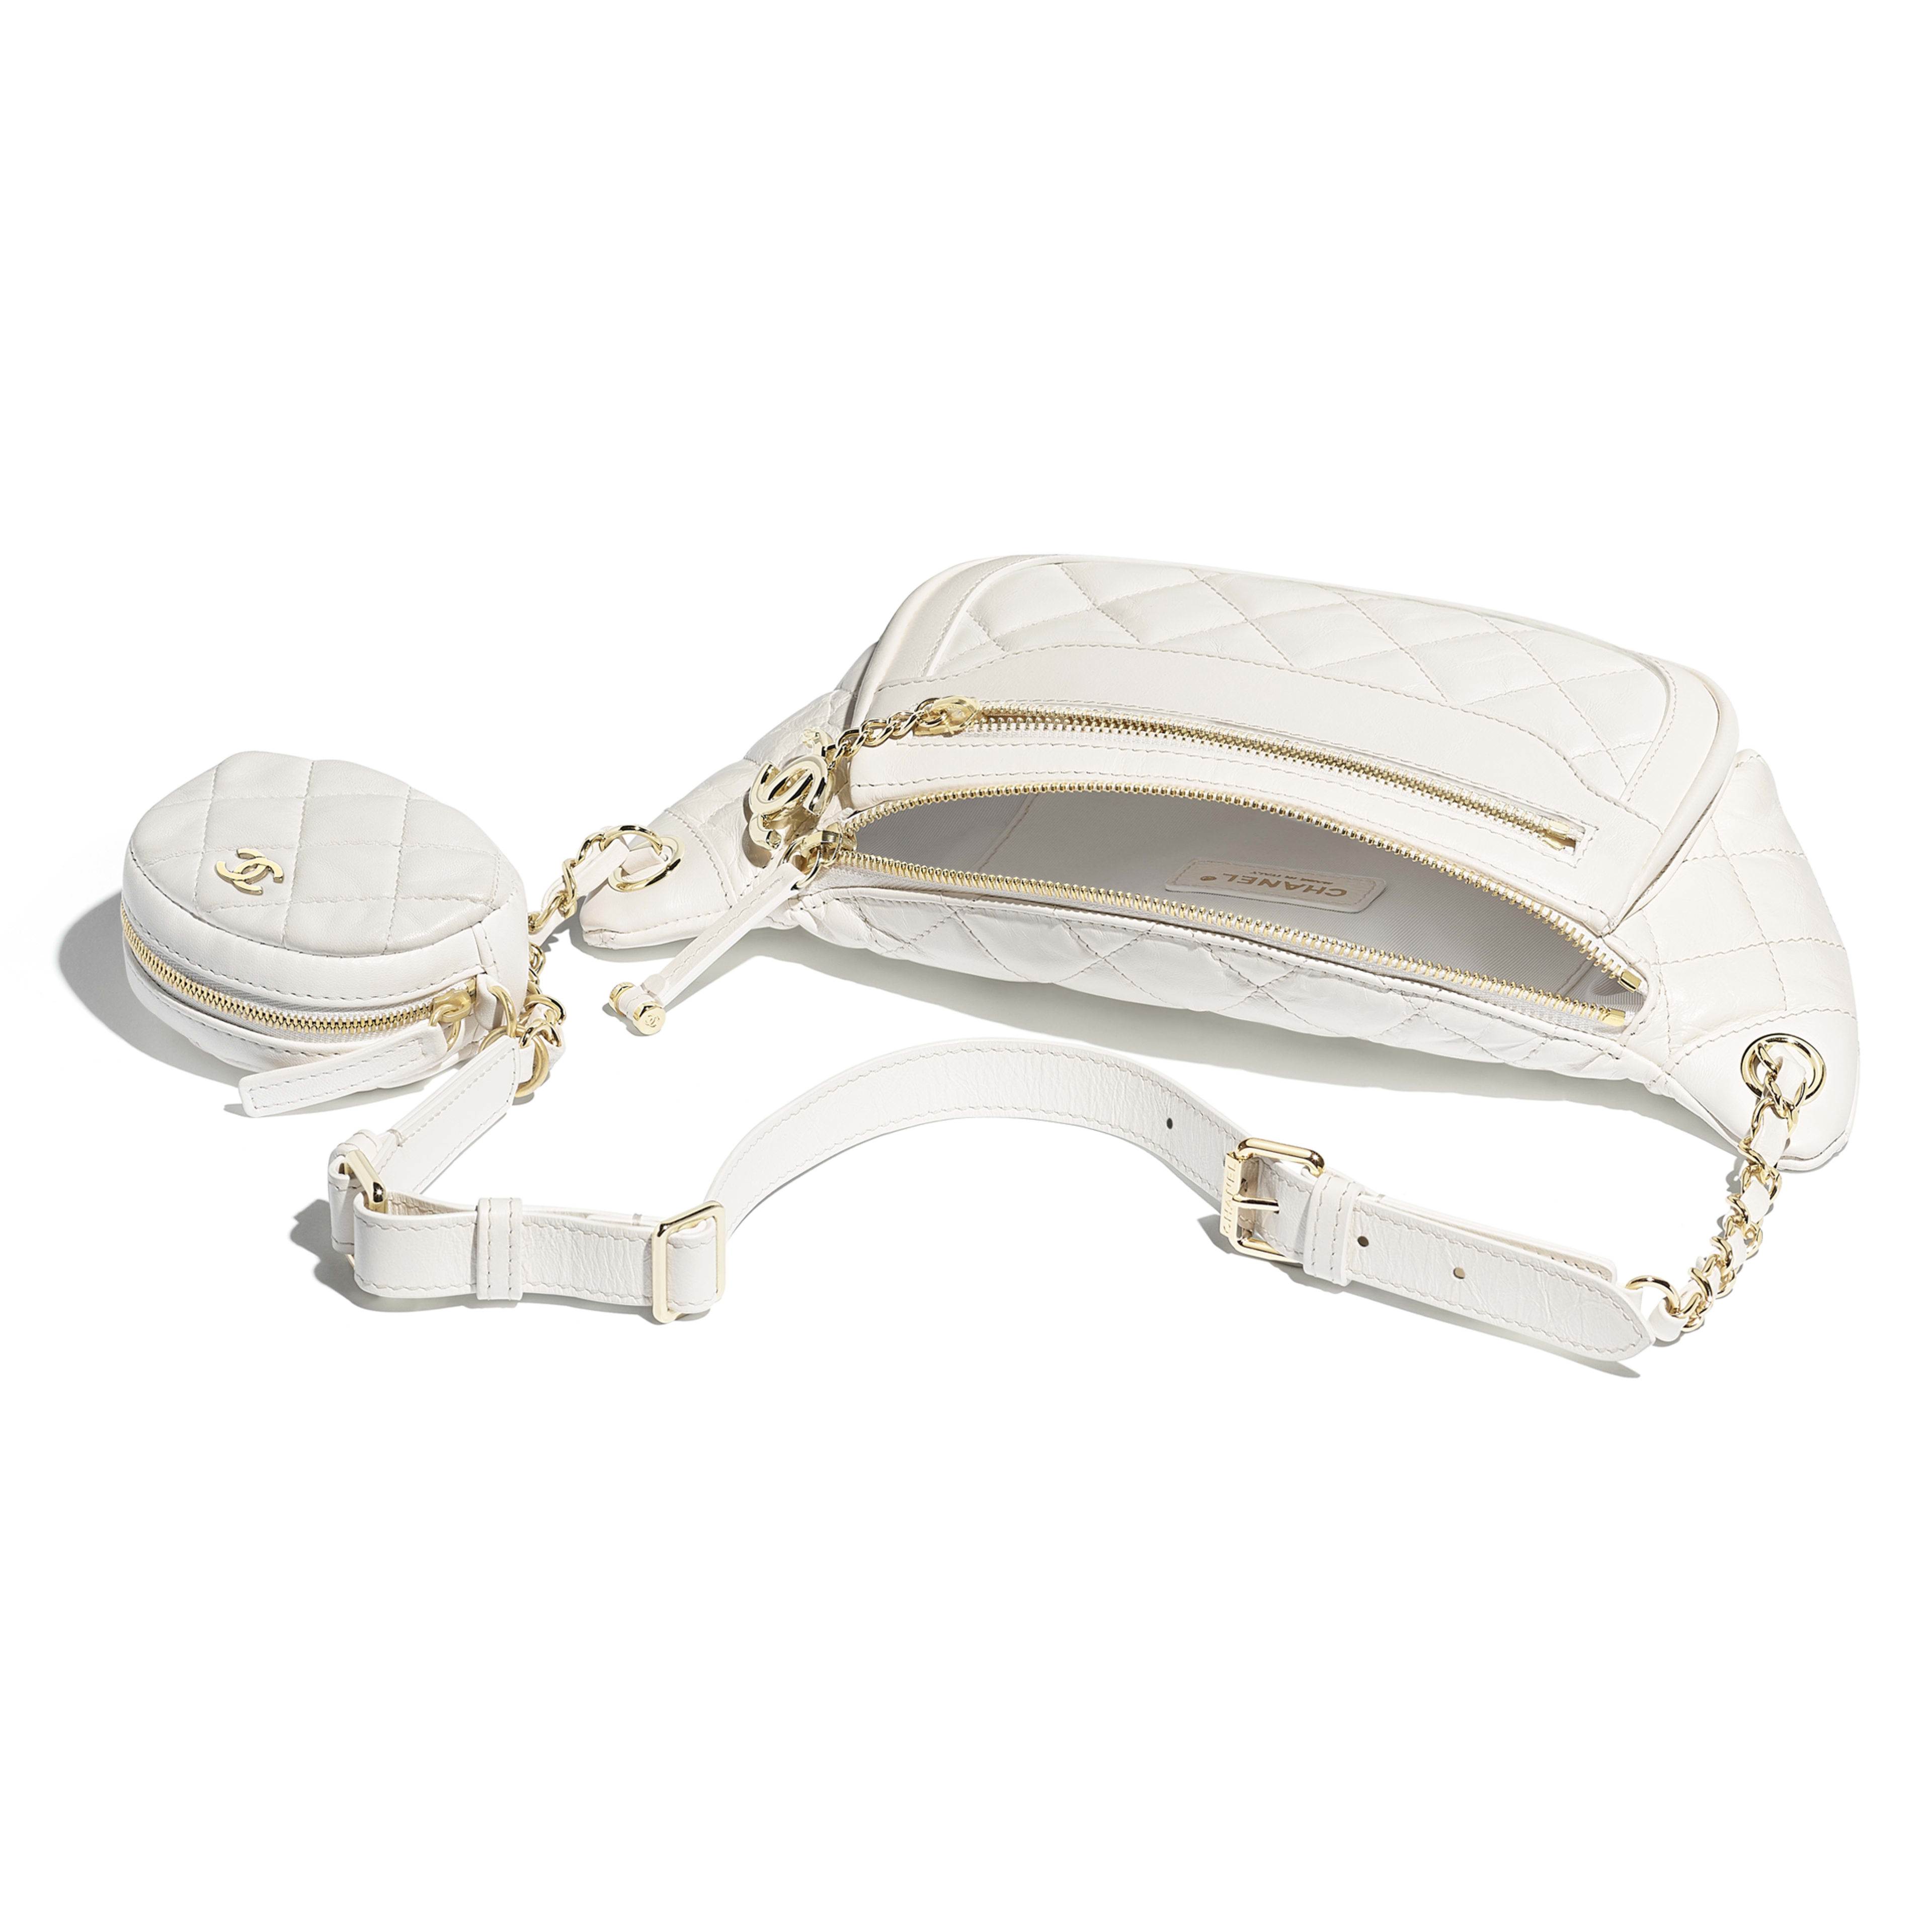 Waist Bag & Coin Purse - White - Aged Calfskin & Gold-Tone Metal - Other view - see full sized version